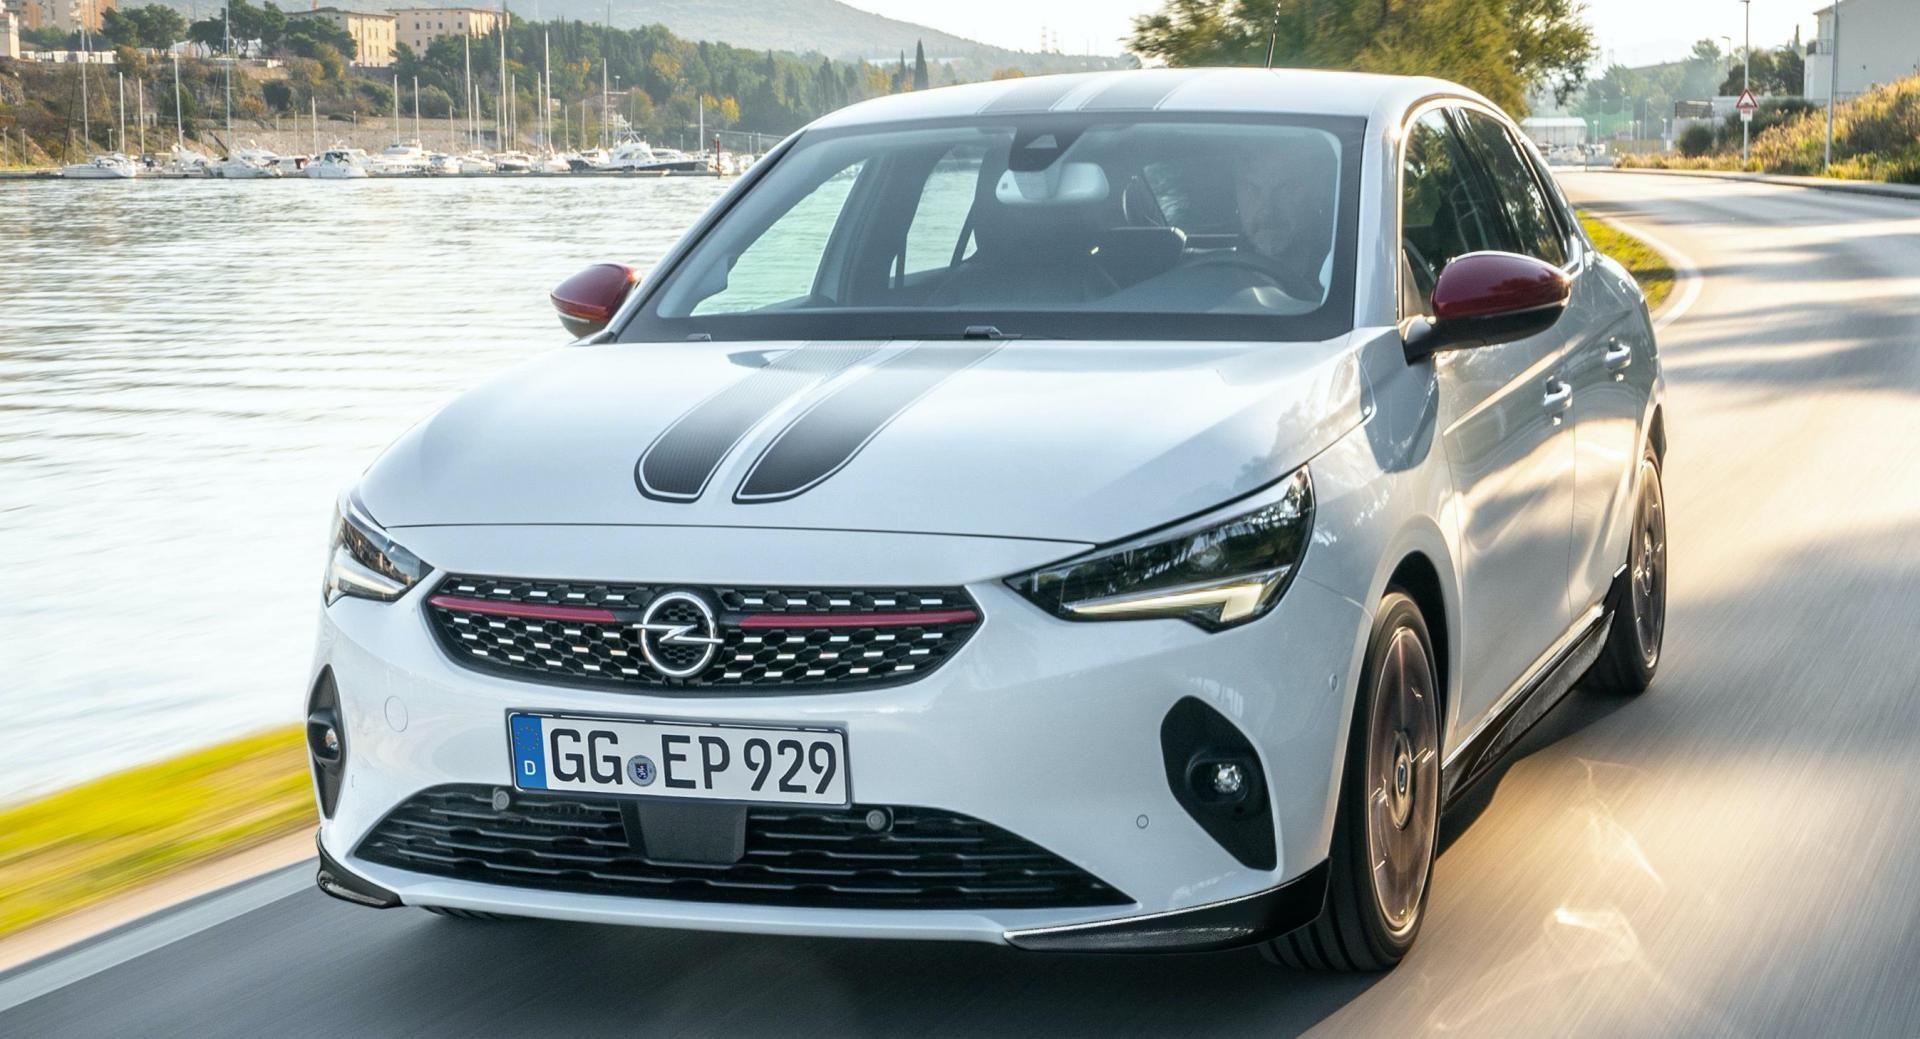 2020 Opel Corsa Offers More Personalization Options Than Ever Before Accessories Opel Opelcorsa Psa Vauxhall Cars Carsofinstagr Opel Corsa Opel Vauxhall